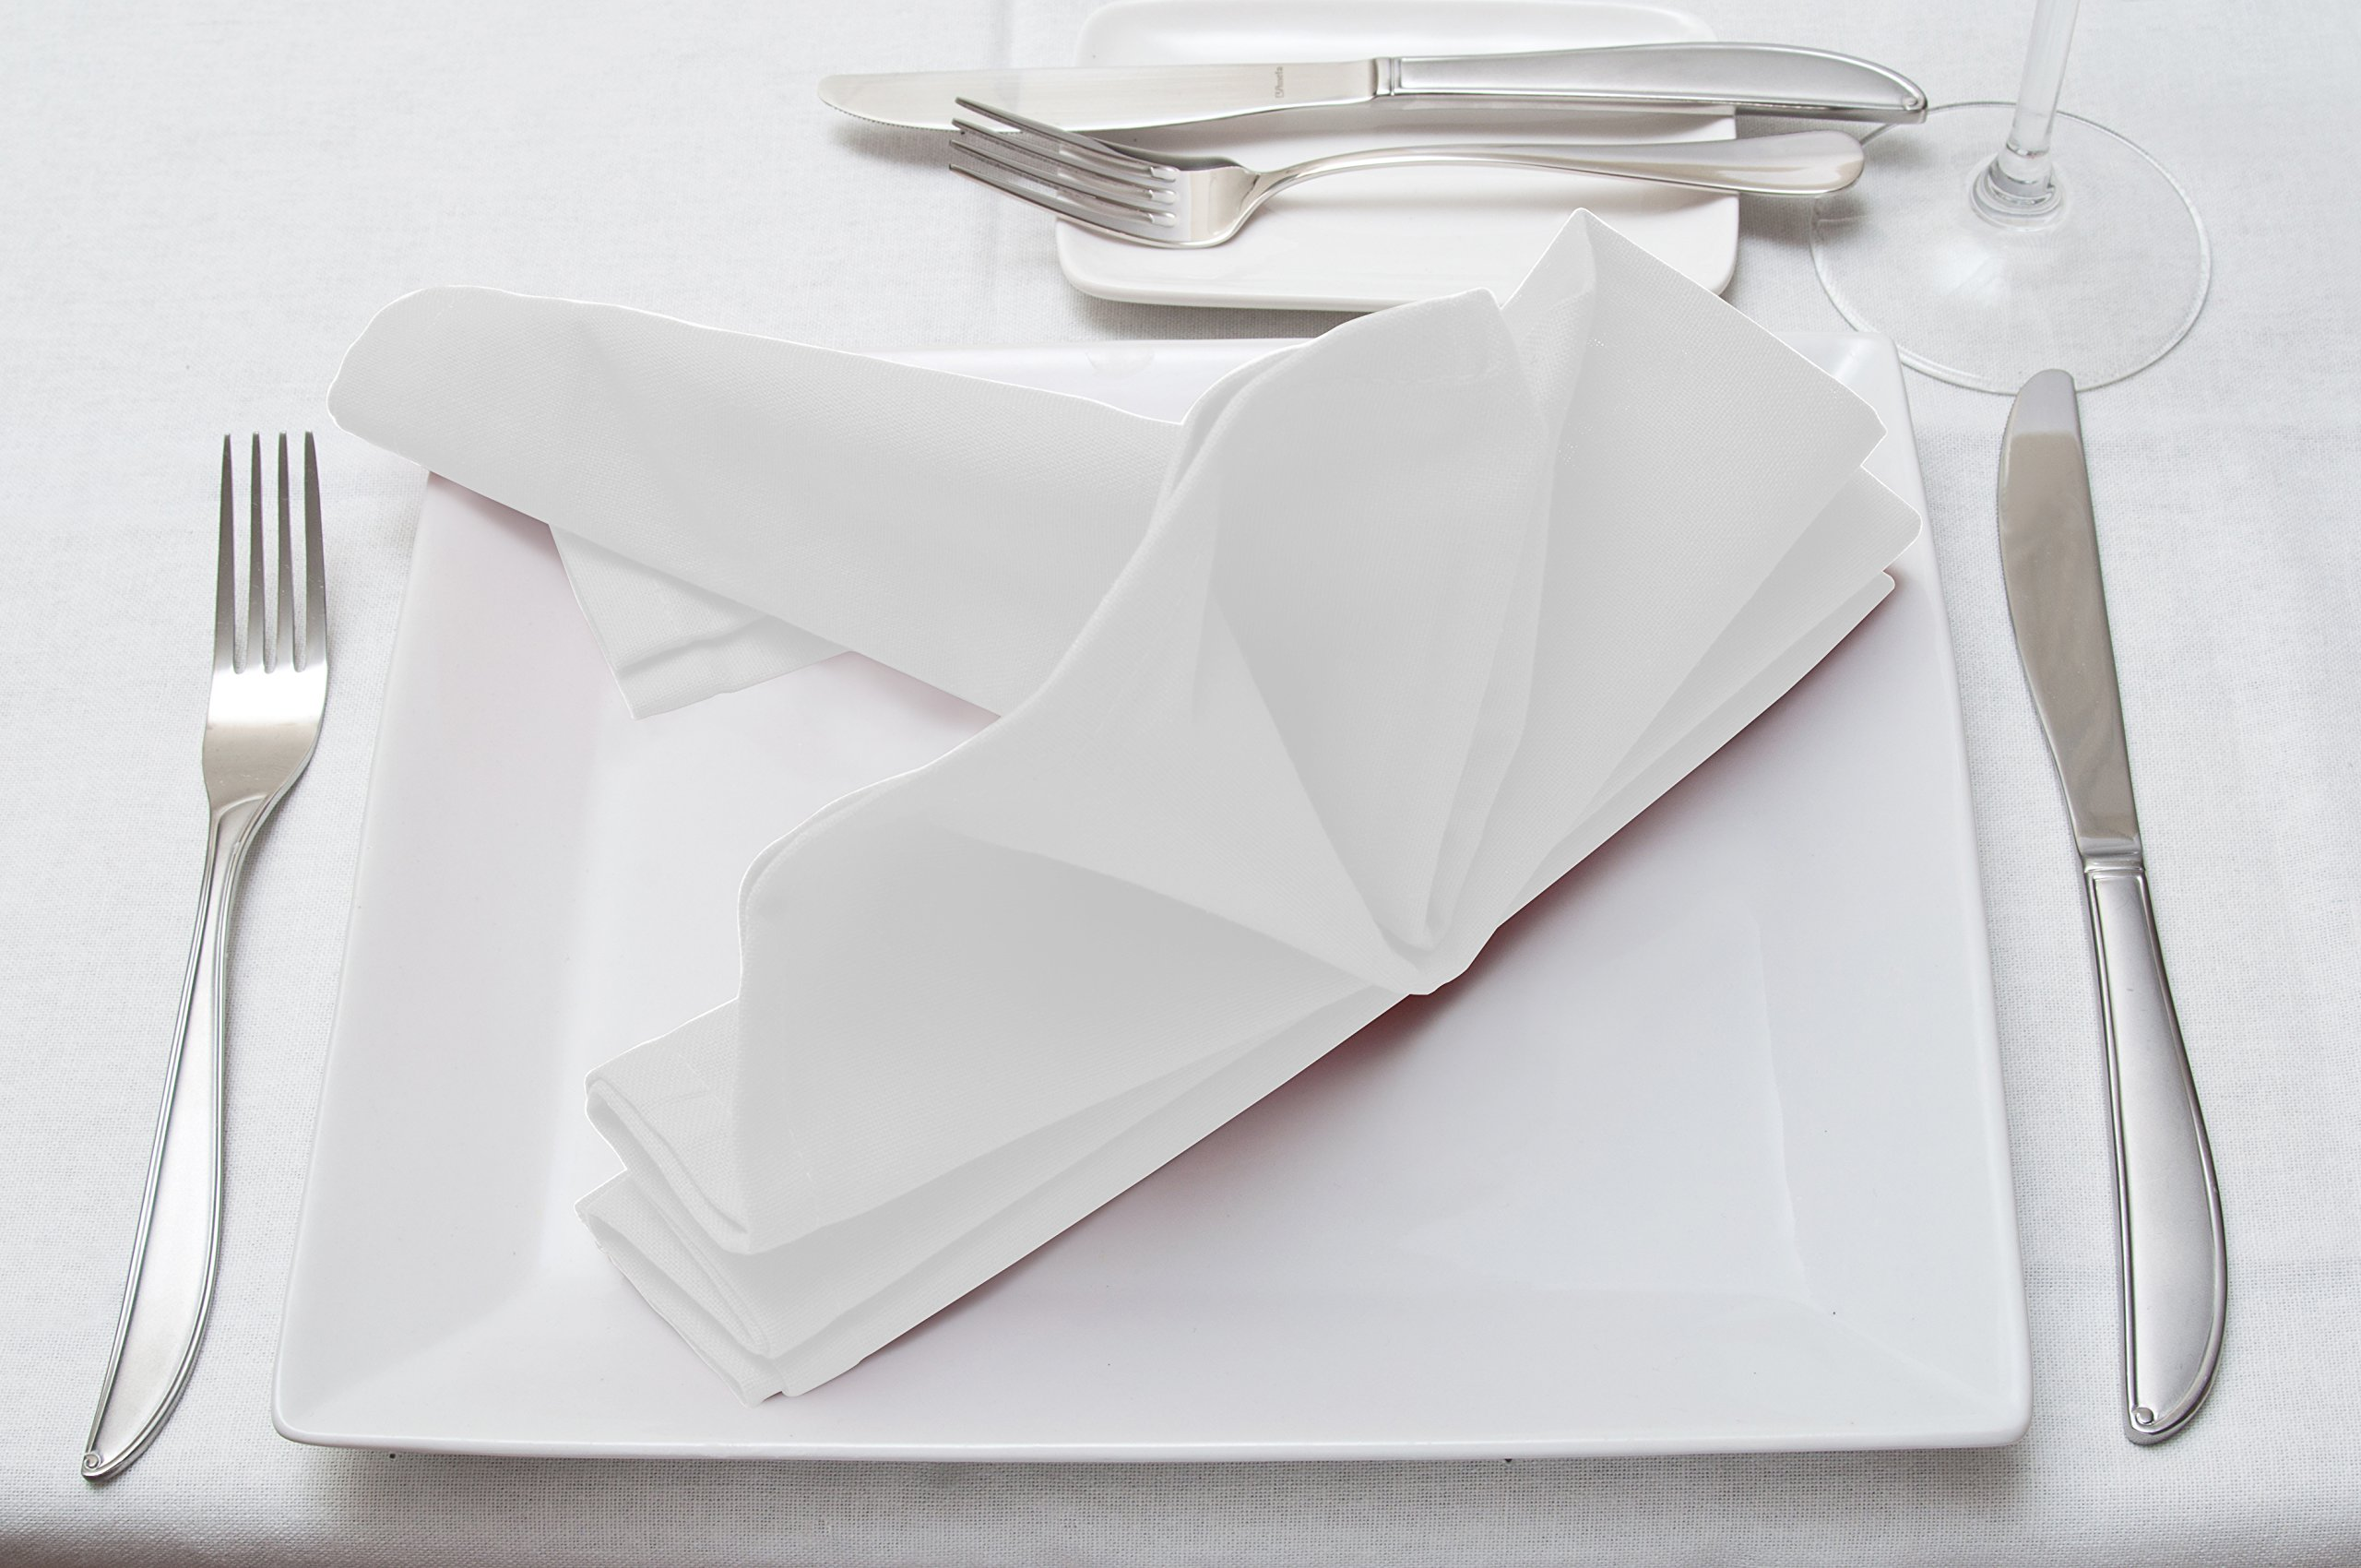 Cotton Dinner Napkins White - 12 Pack (18 inches x18 inches) Soft and Comfortable - Durable Hotel Quality - Ideal for Events and Regular Home Use - by Utopia Bedding by Utopia Bedding (Image #3)